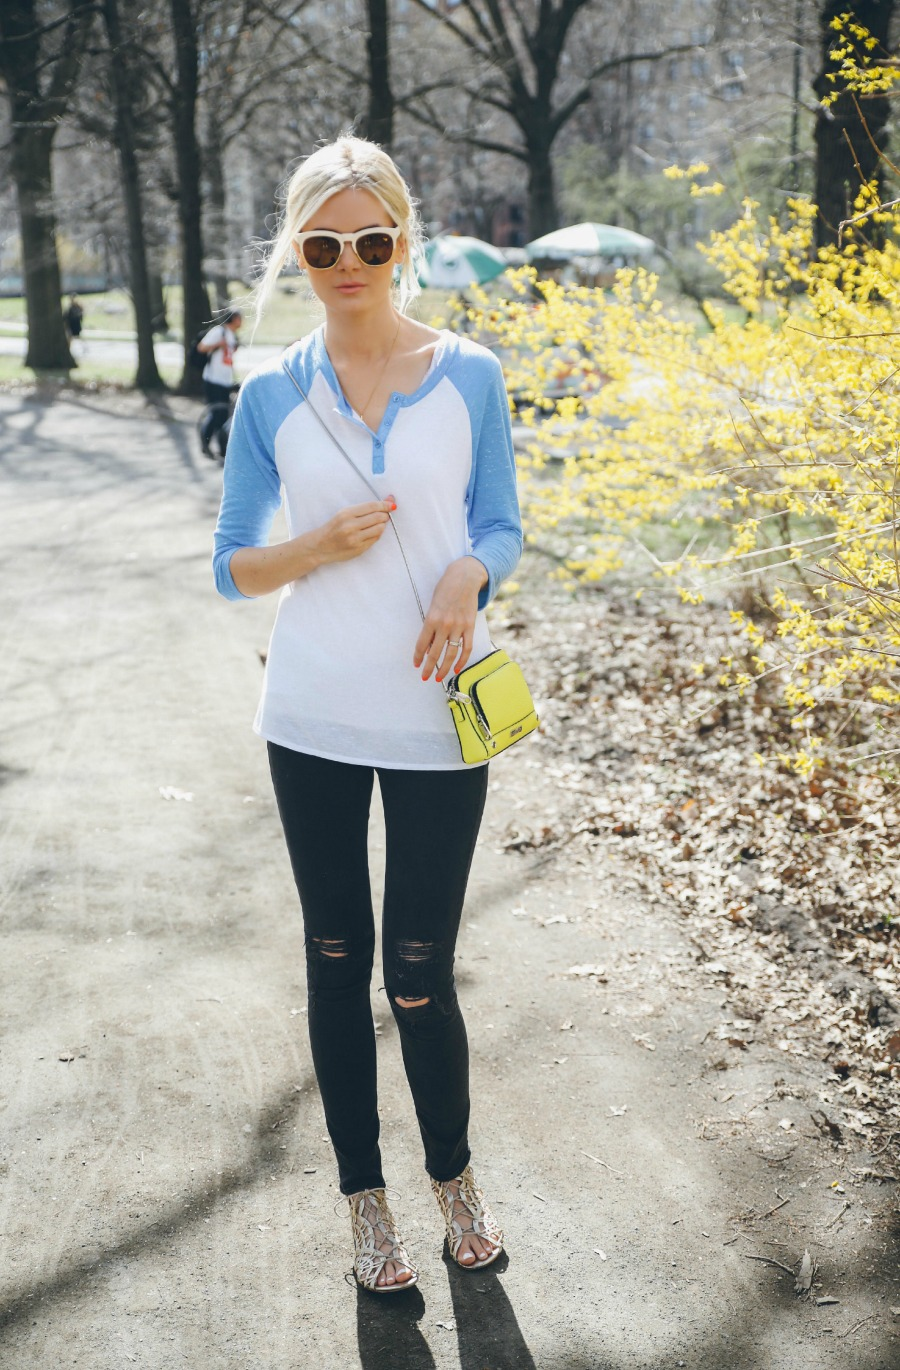 Amber Fillerup Clark is wearing a blue and white baseball T-shirt from Free Press, black jeans from Rag & Bone, sunglasses from Wildfox, yellow mini bag from Milly and the sandals are from Joie